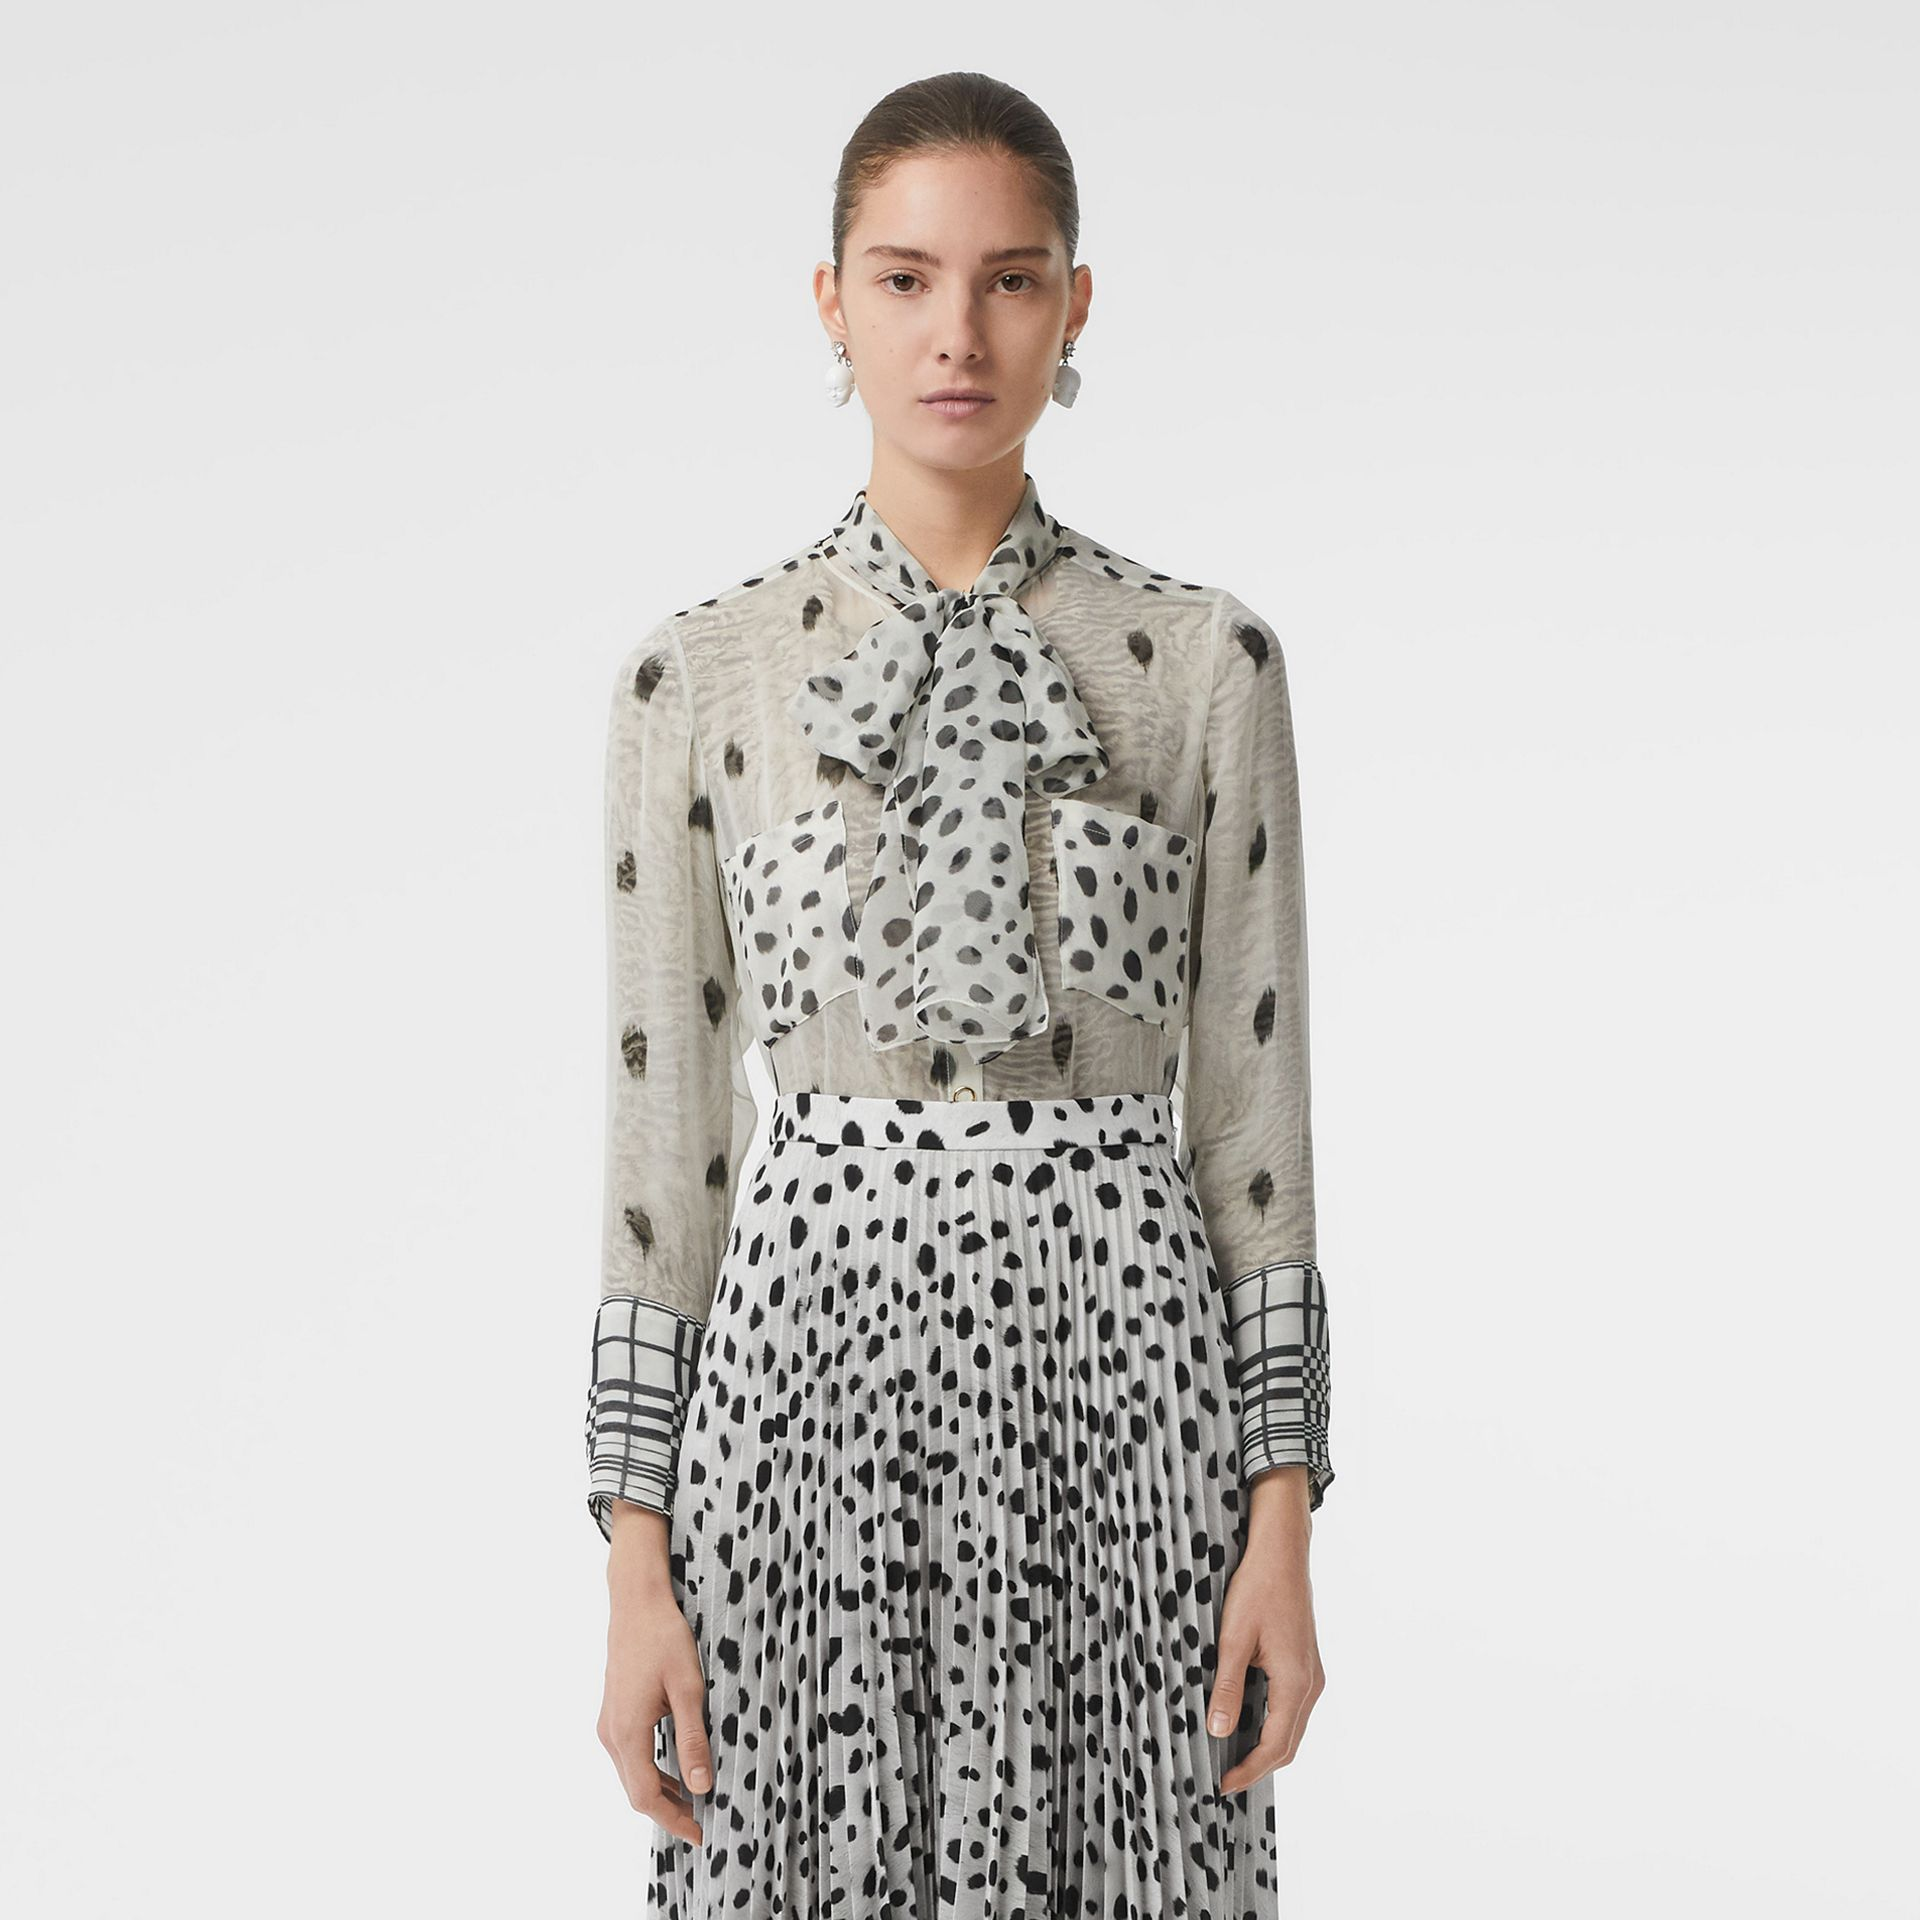 Dalmatian Print Crepe Pleated Skirt in Black/white - Women | Burberry - gallery image 5